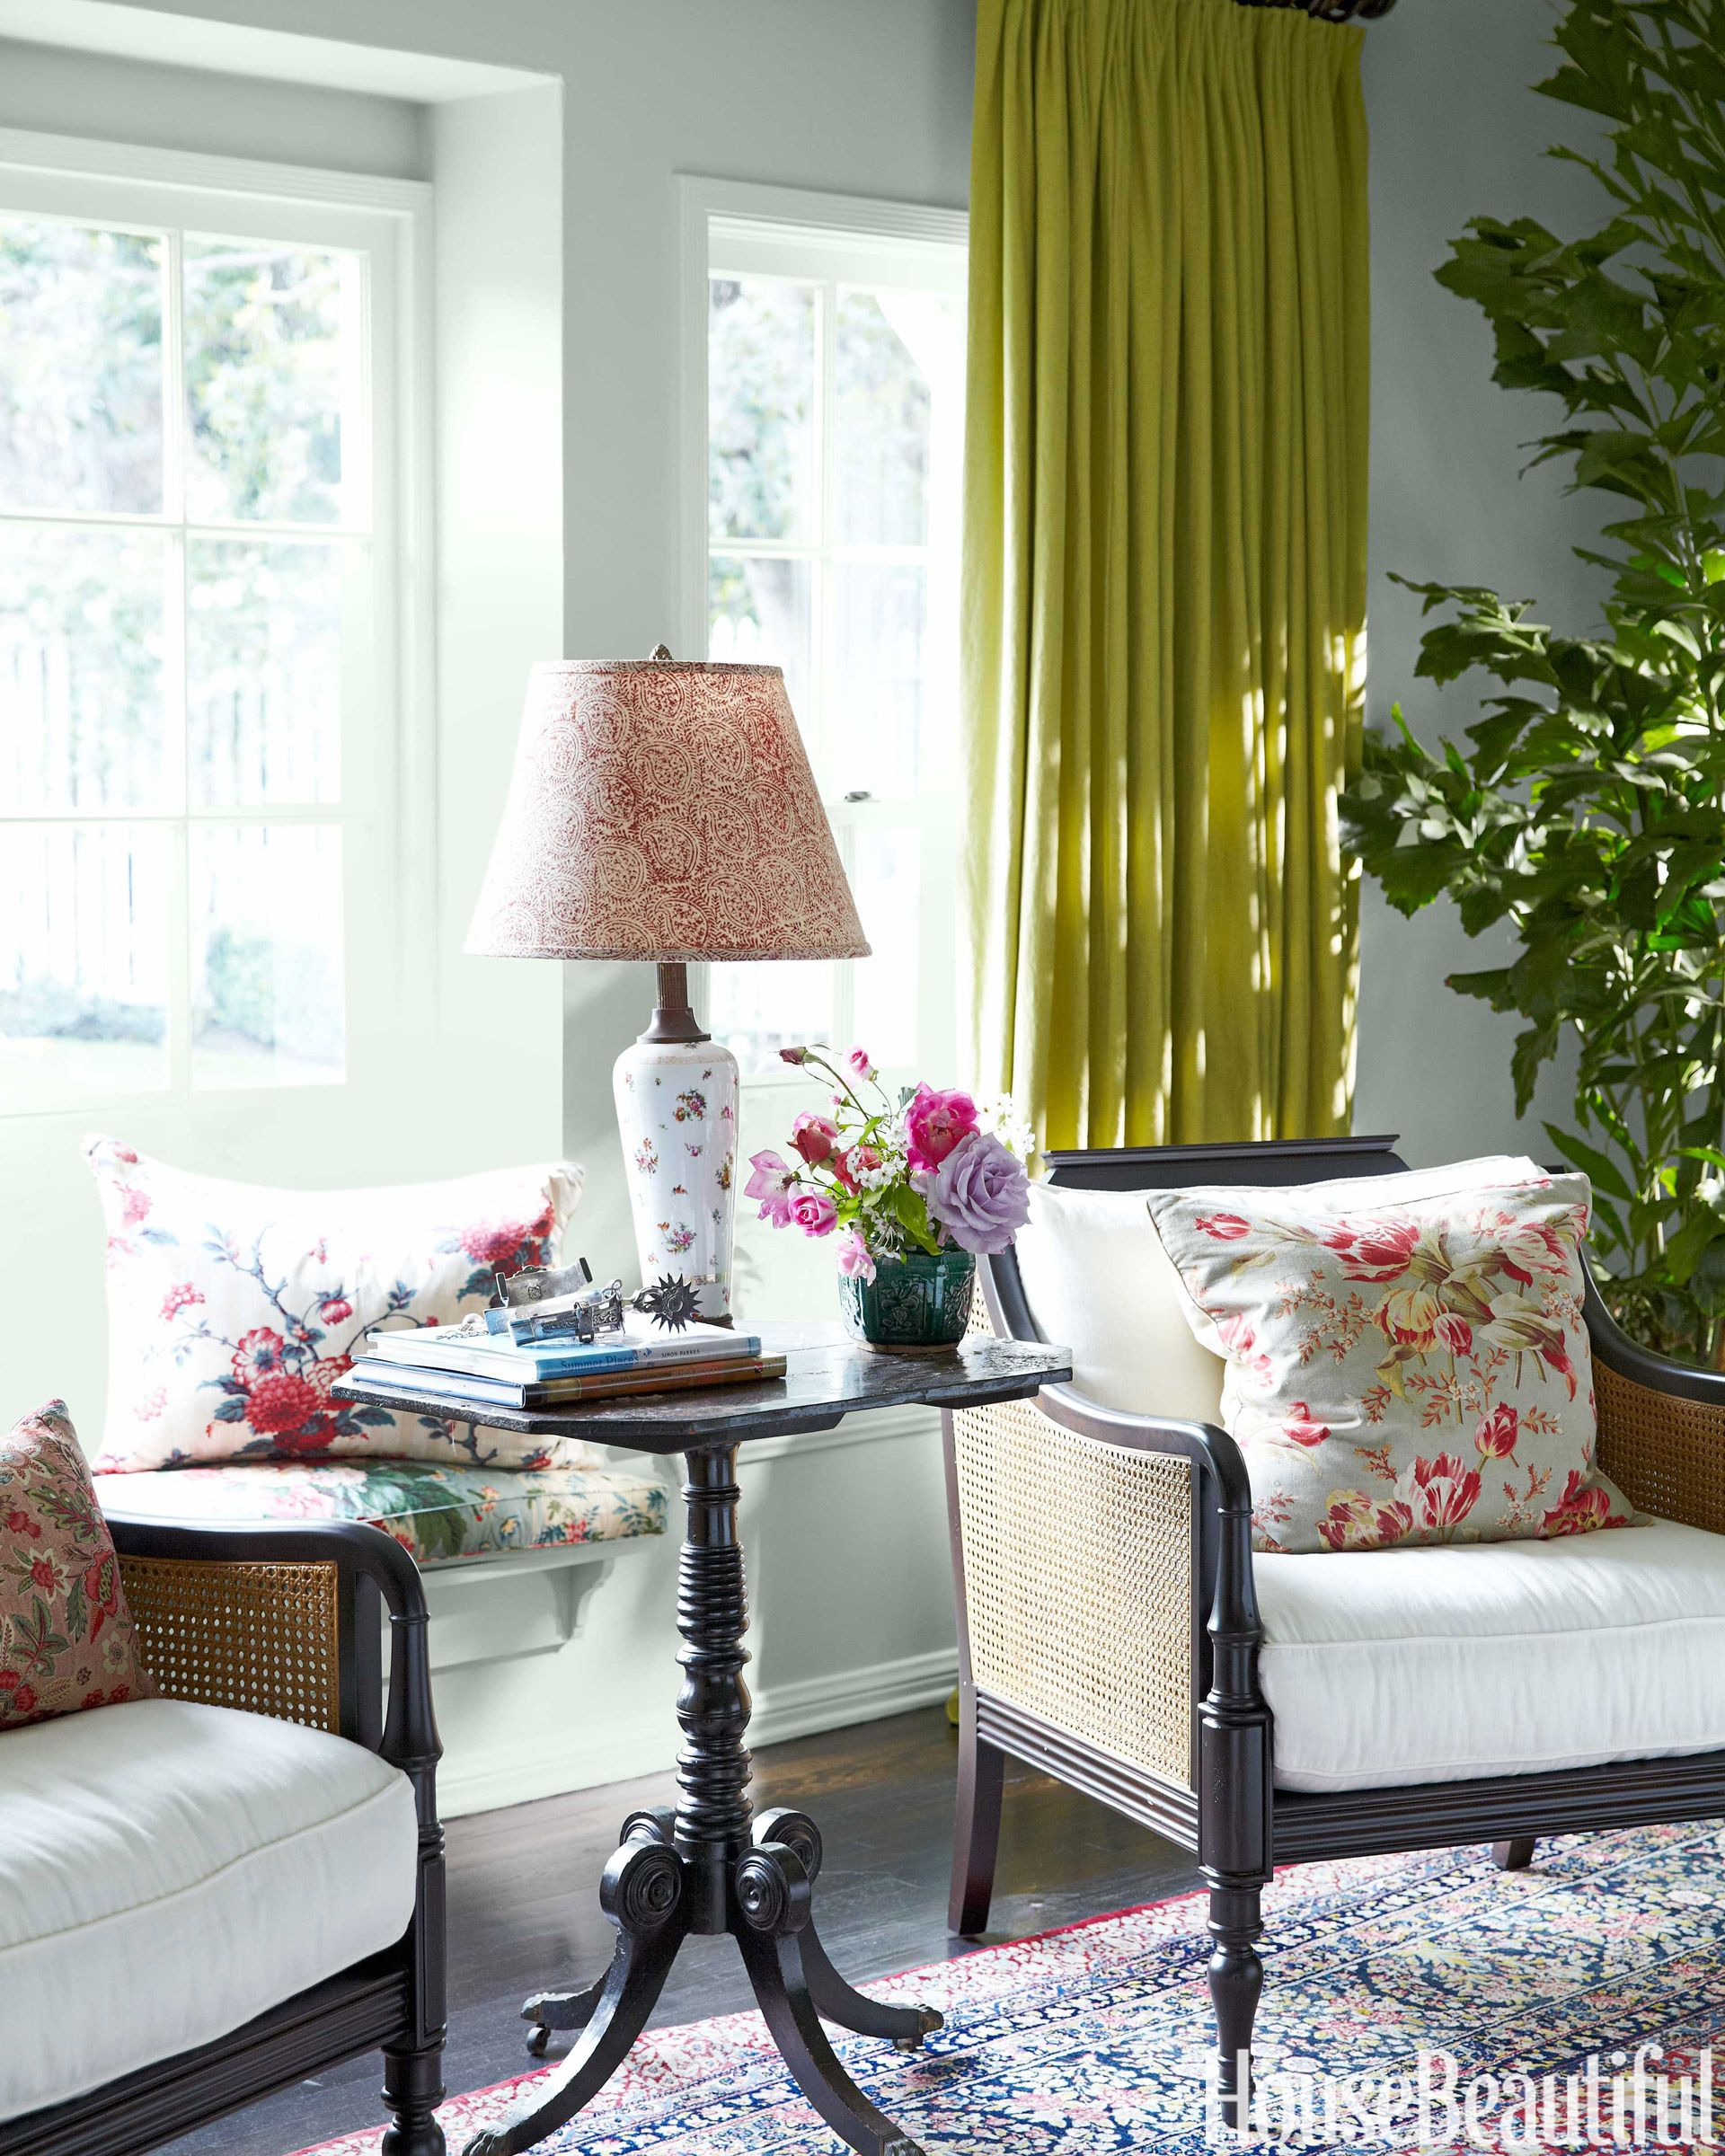 Tour a los angeles cottage with granny chic charm